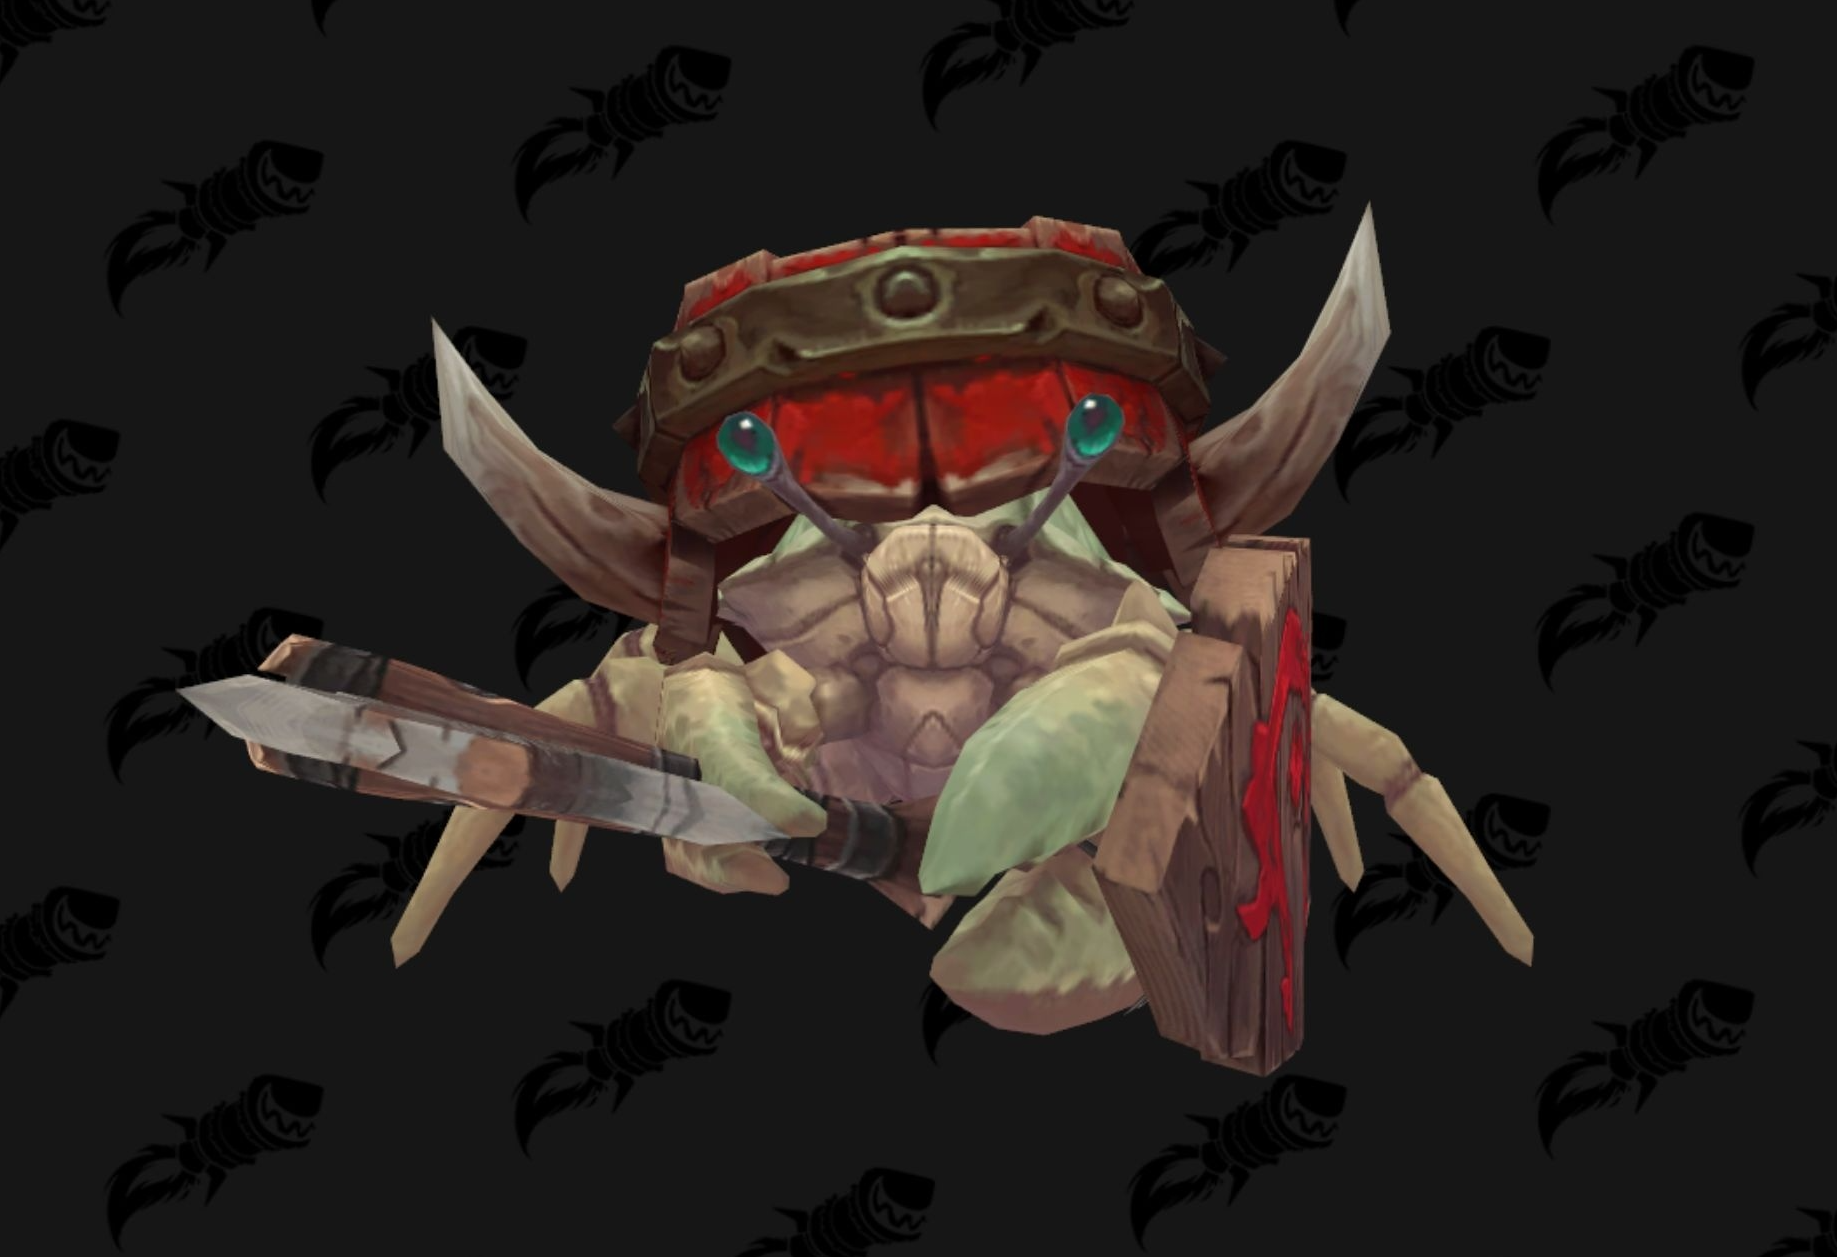 0cc3dfc56bb Honor Level 400 Pets and 500 Mount - Bucketshell